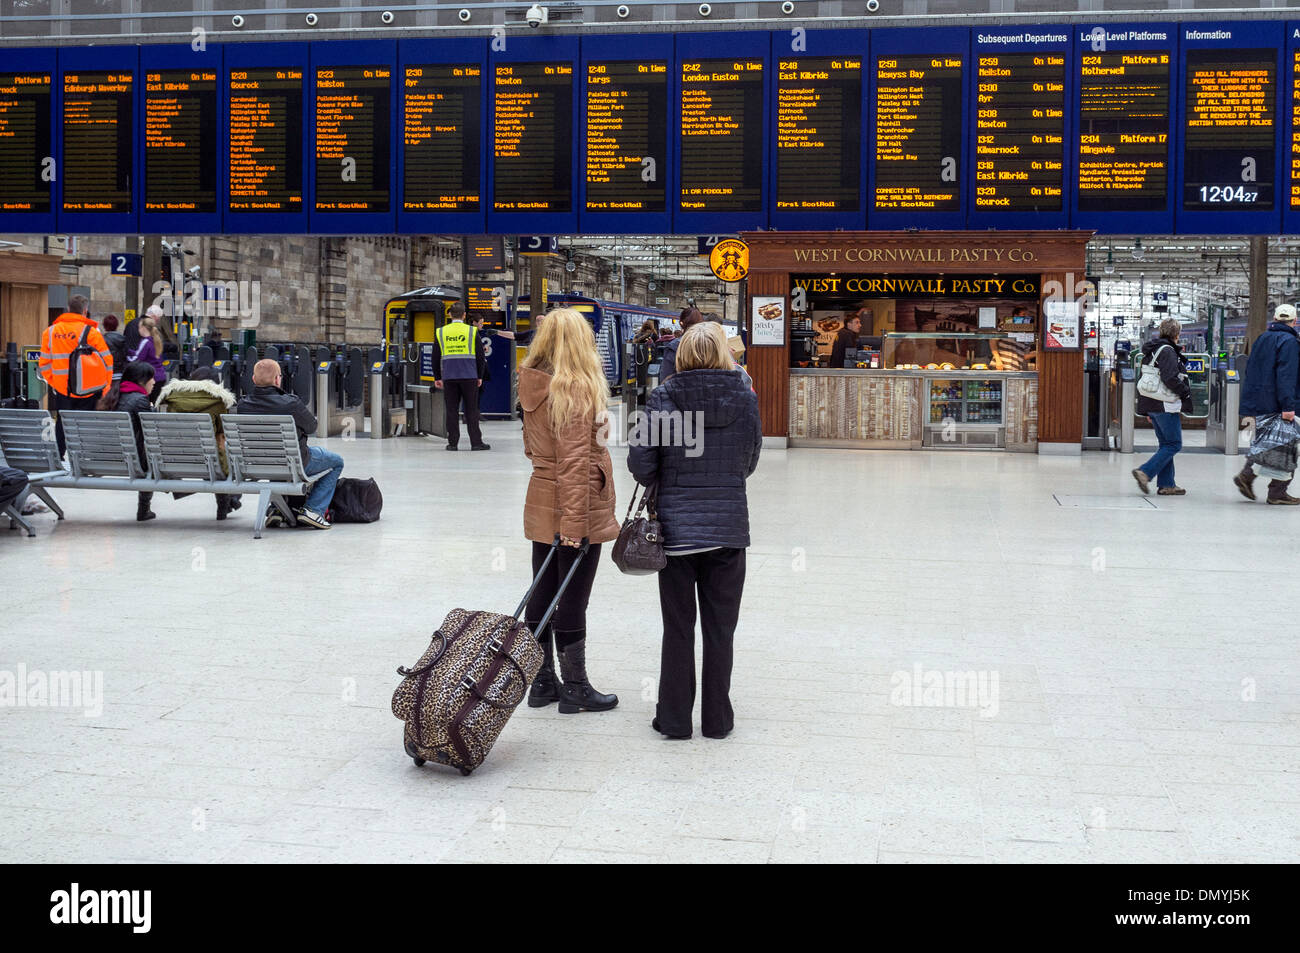 Two women passengers looking at the destination board at Glasgow Central railway station, Glasgow, Scotland, UK - Stock Image